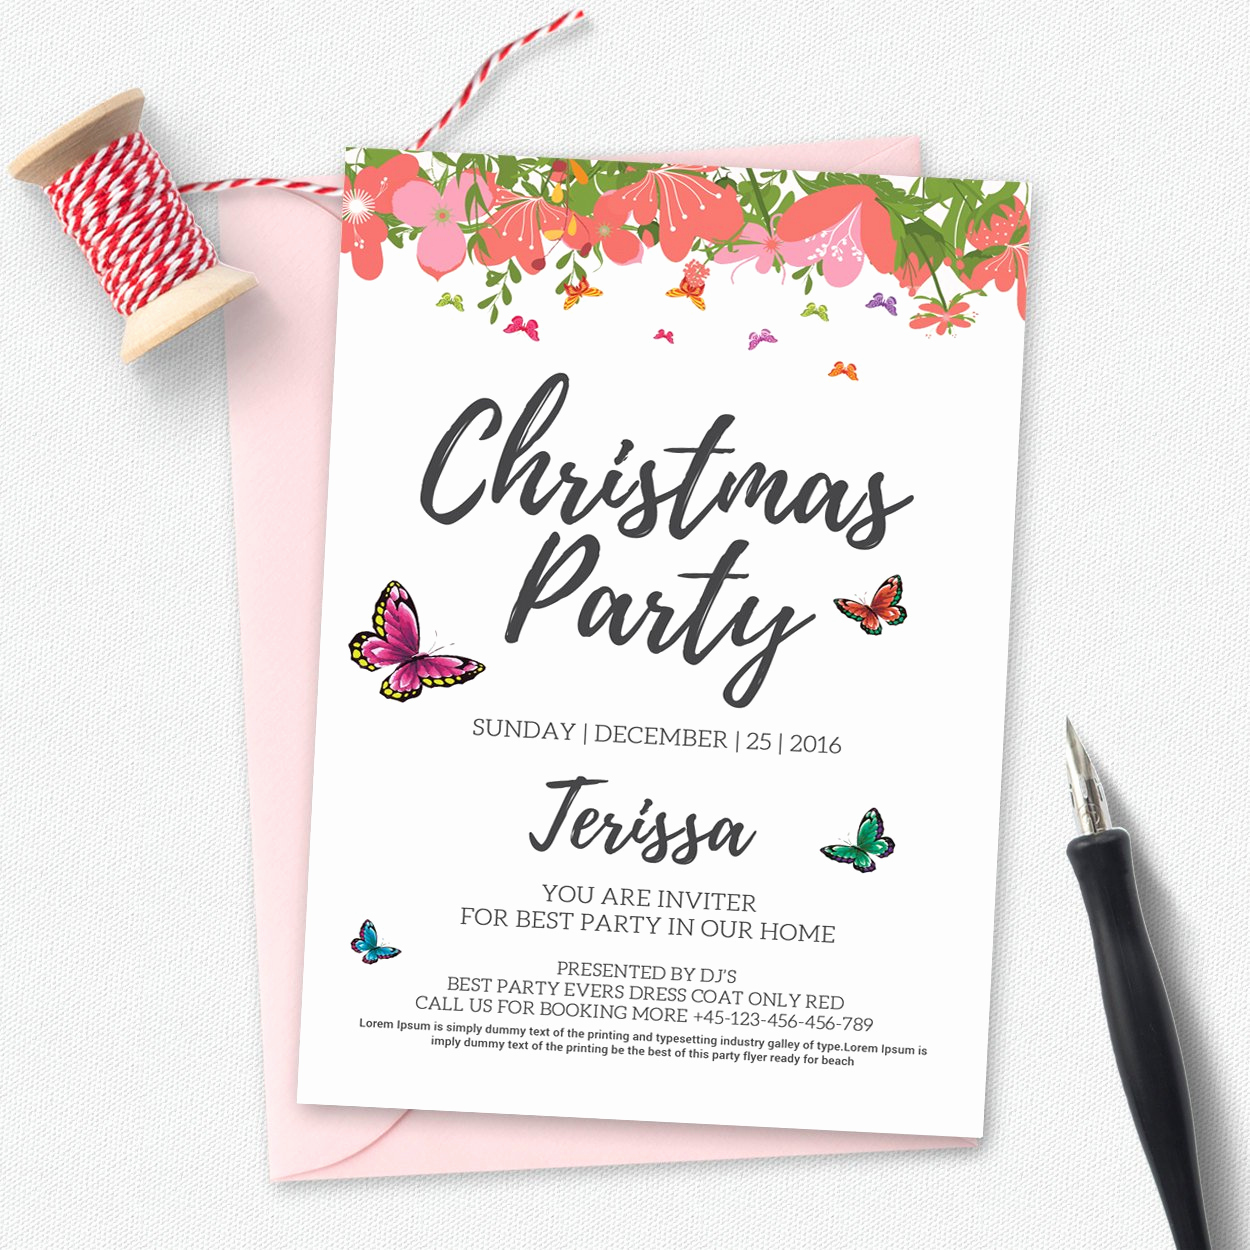 Holiday Party Invitation Template Unique Christmas Party Invitation Template Invitation Templates